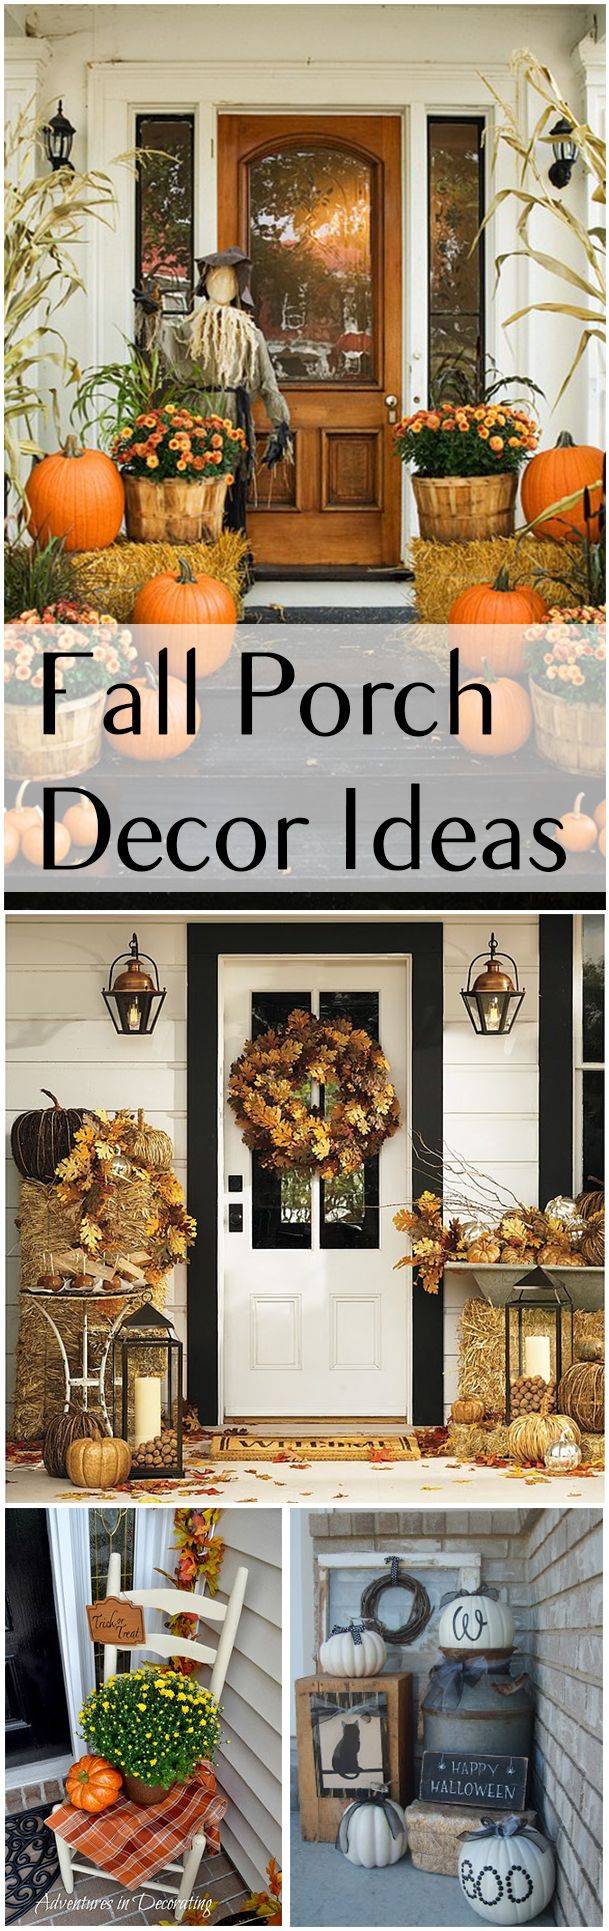 Thanksgiving front door decorations - Fall Porch Decor Ideas